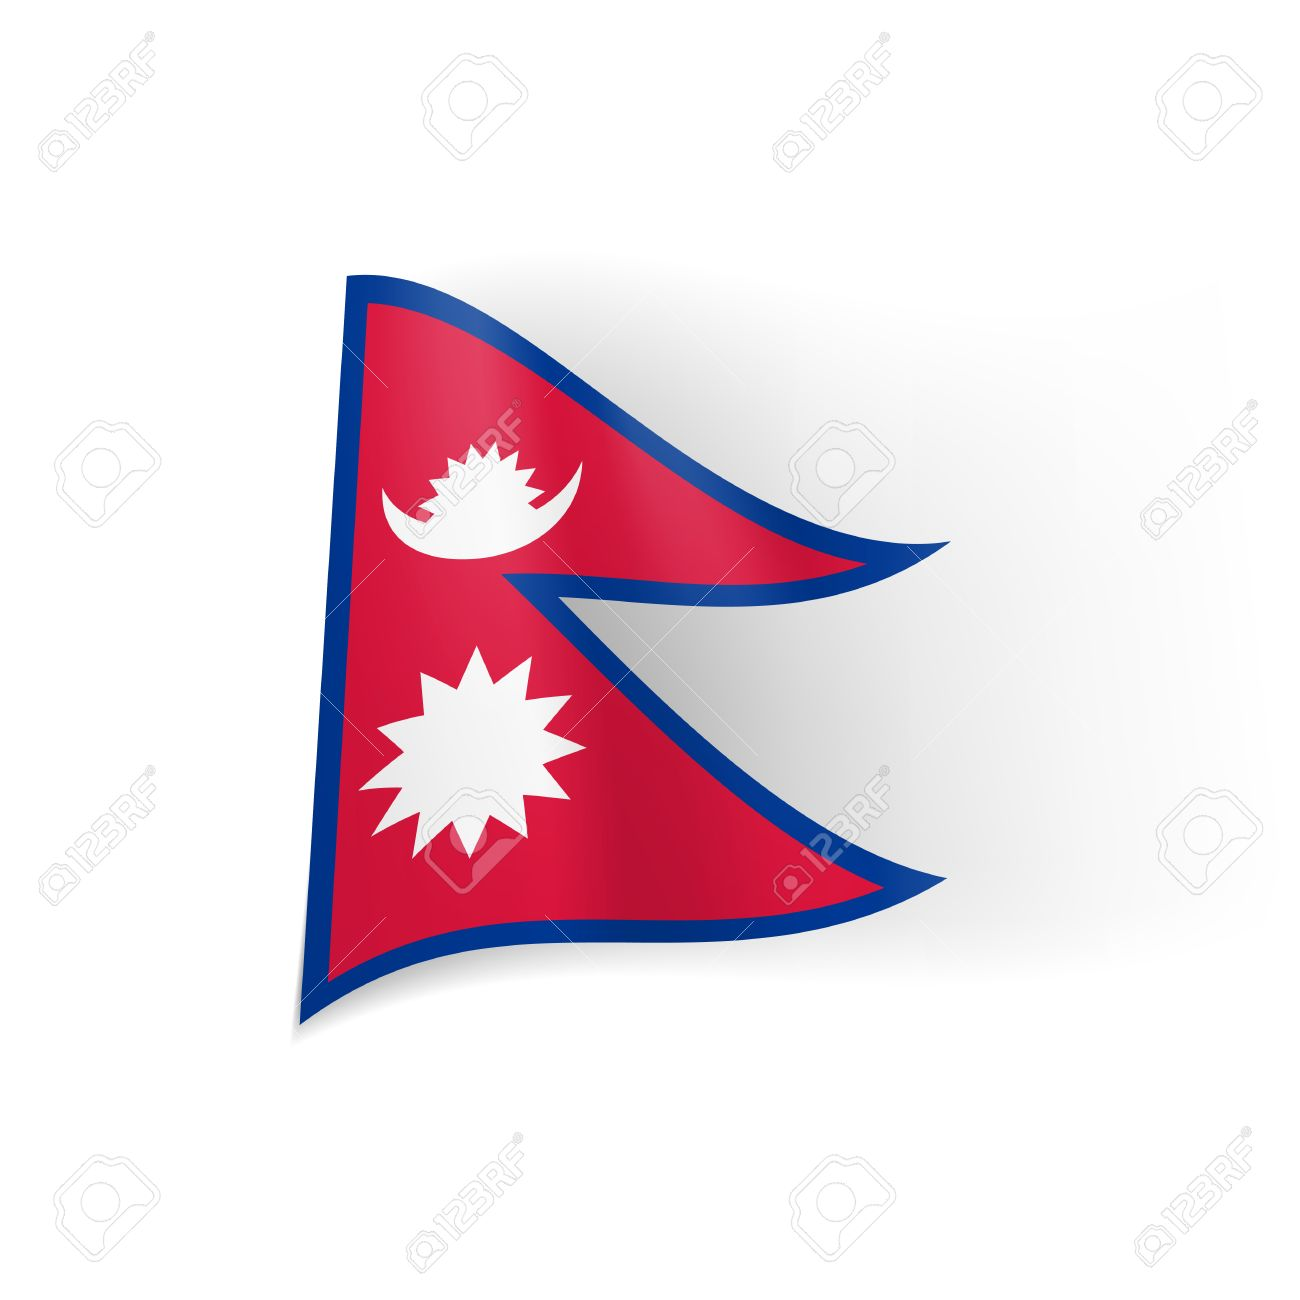 1300x1300 National Flag Of Nepal Blue Bordered Red Field With White Star